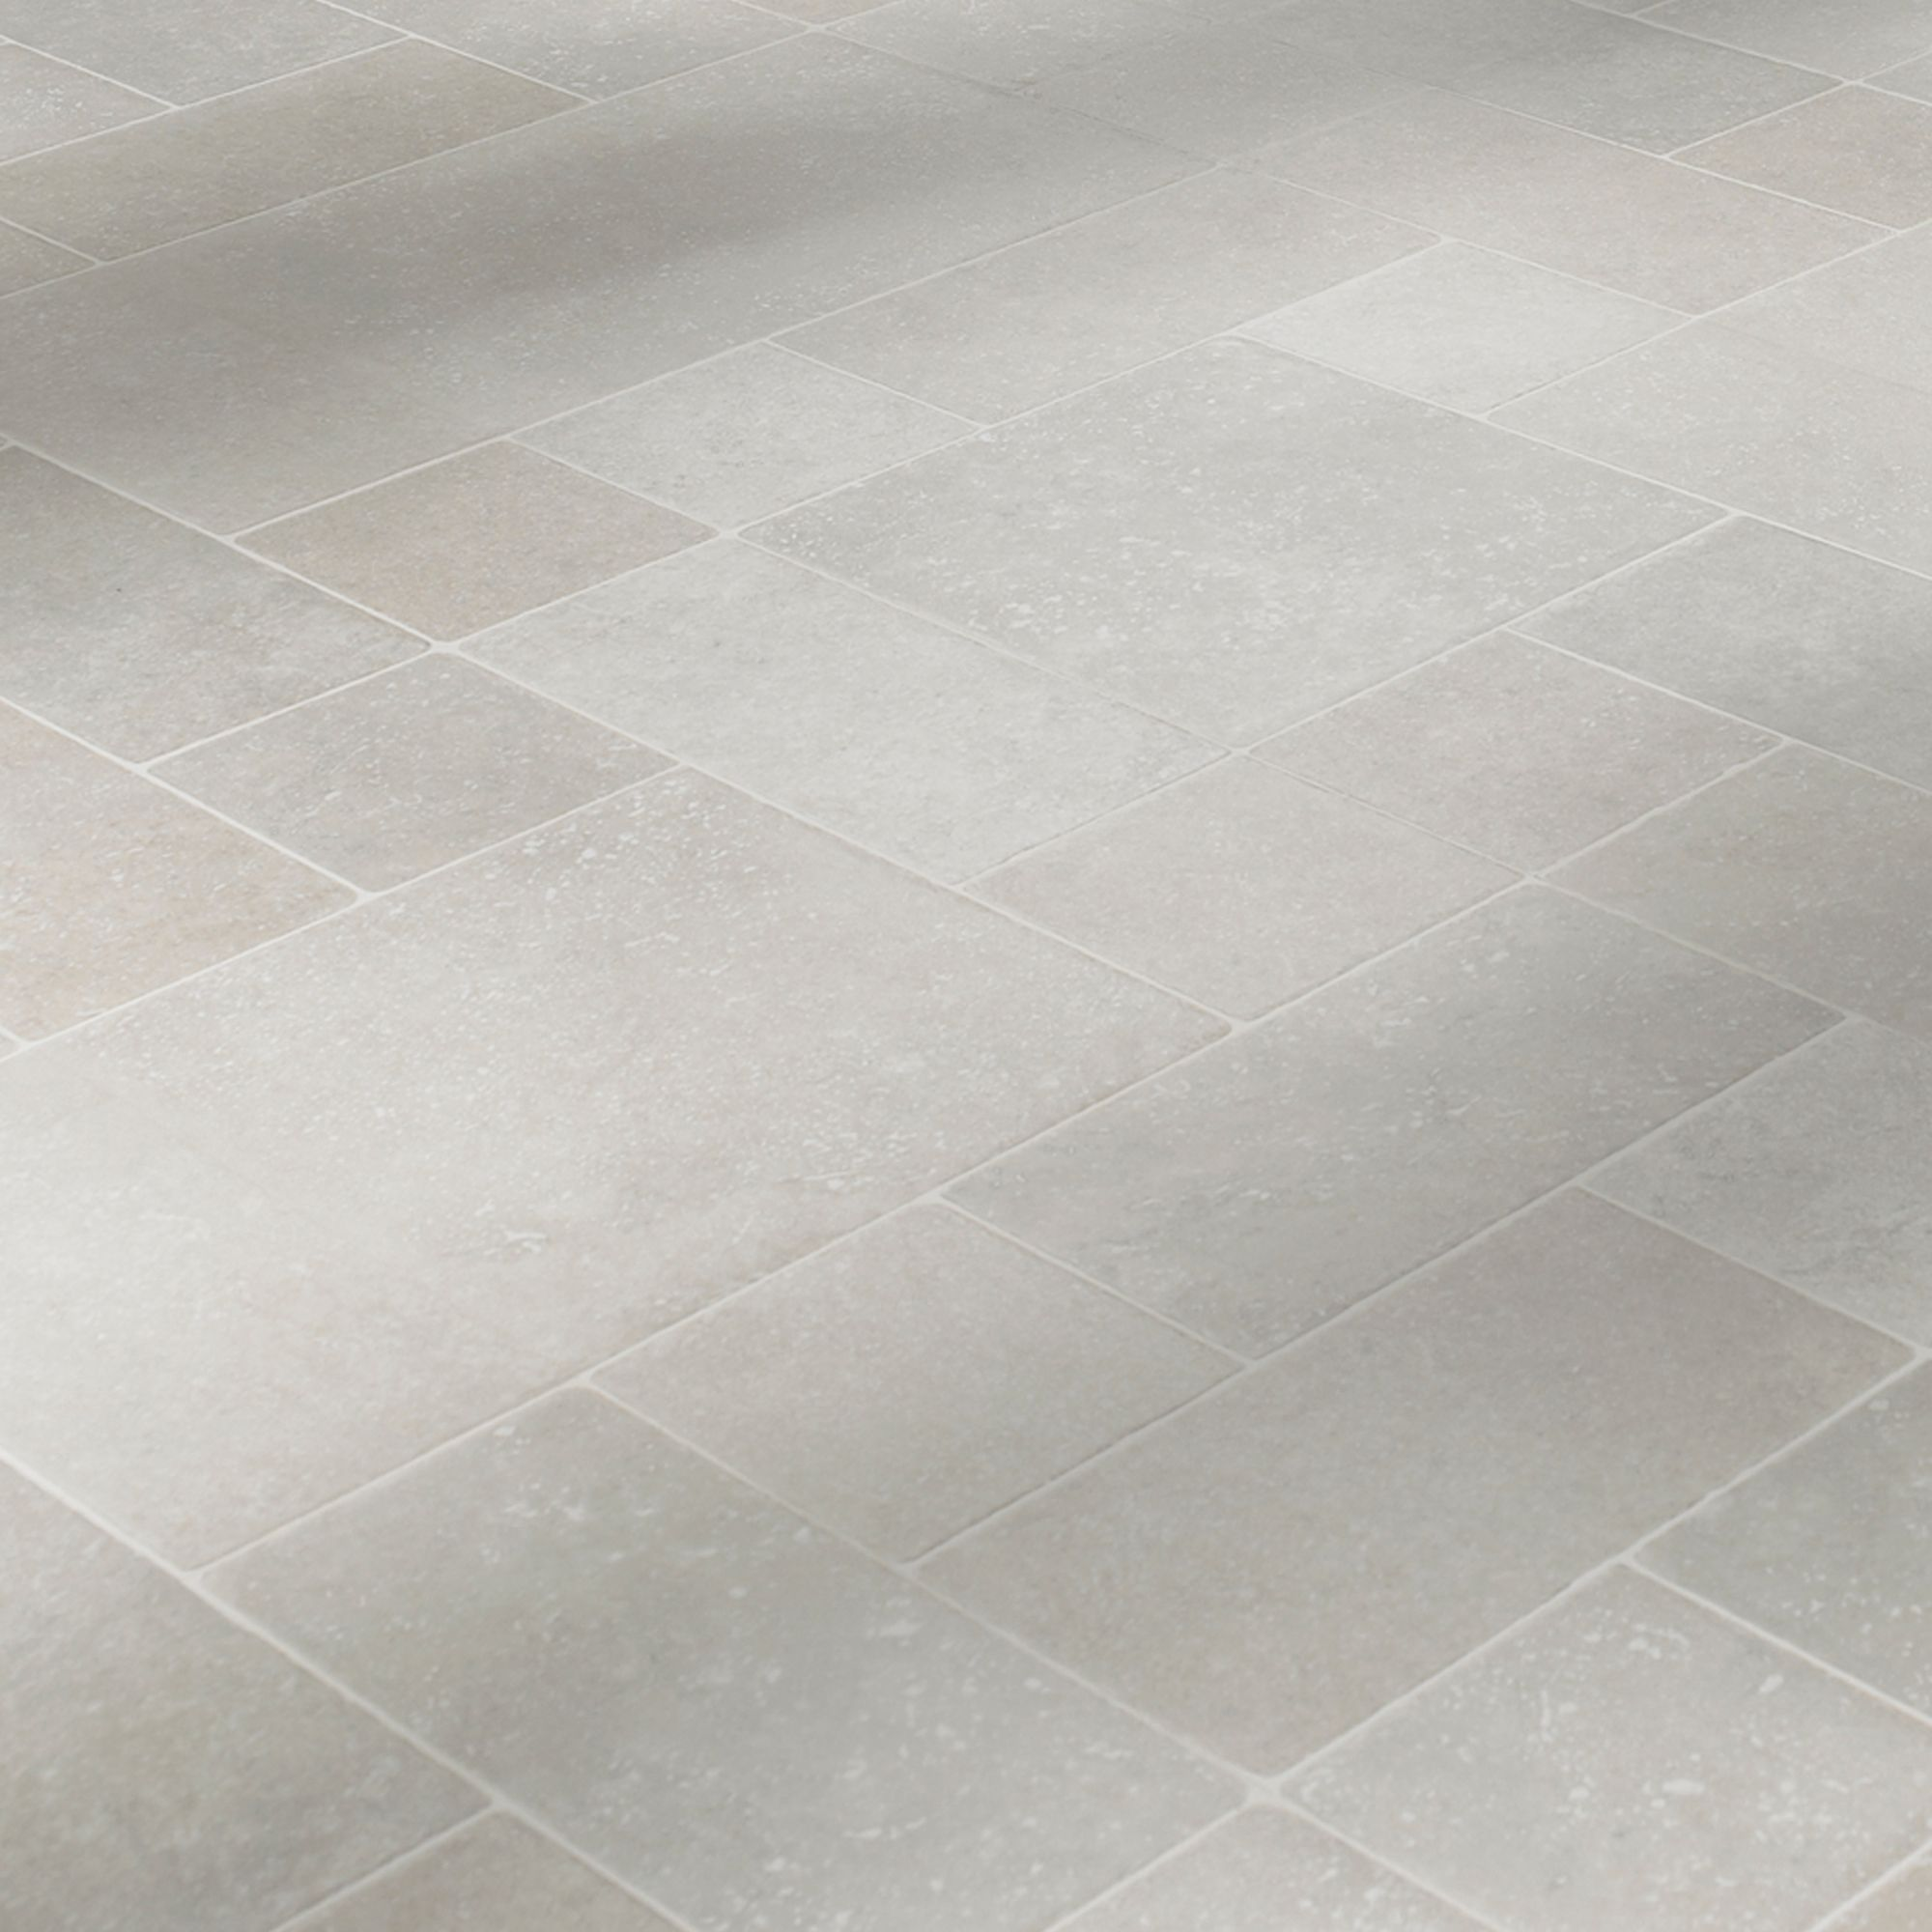 White Bathroom Laminate Flooring barbarita grey limestone effect laminate flooring 1.86 m² pack